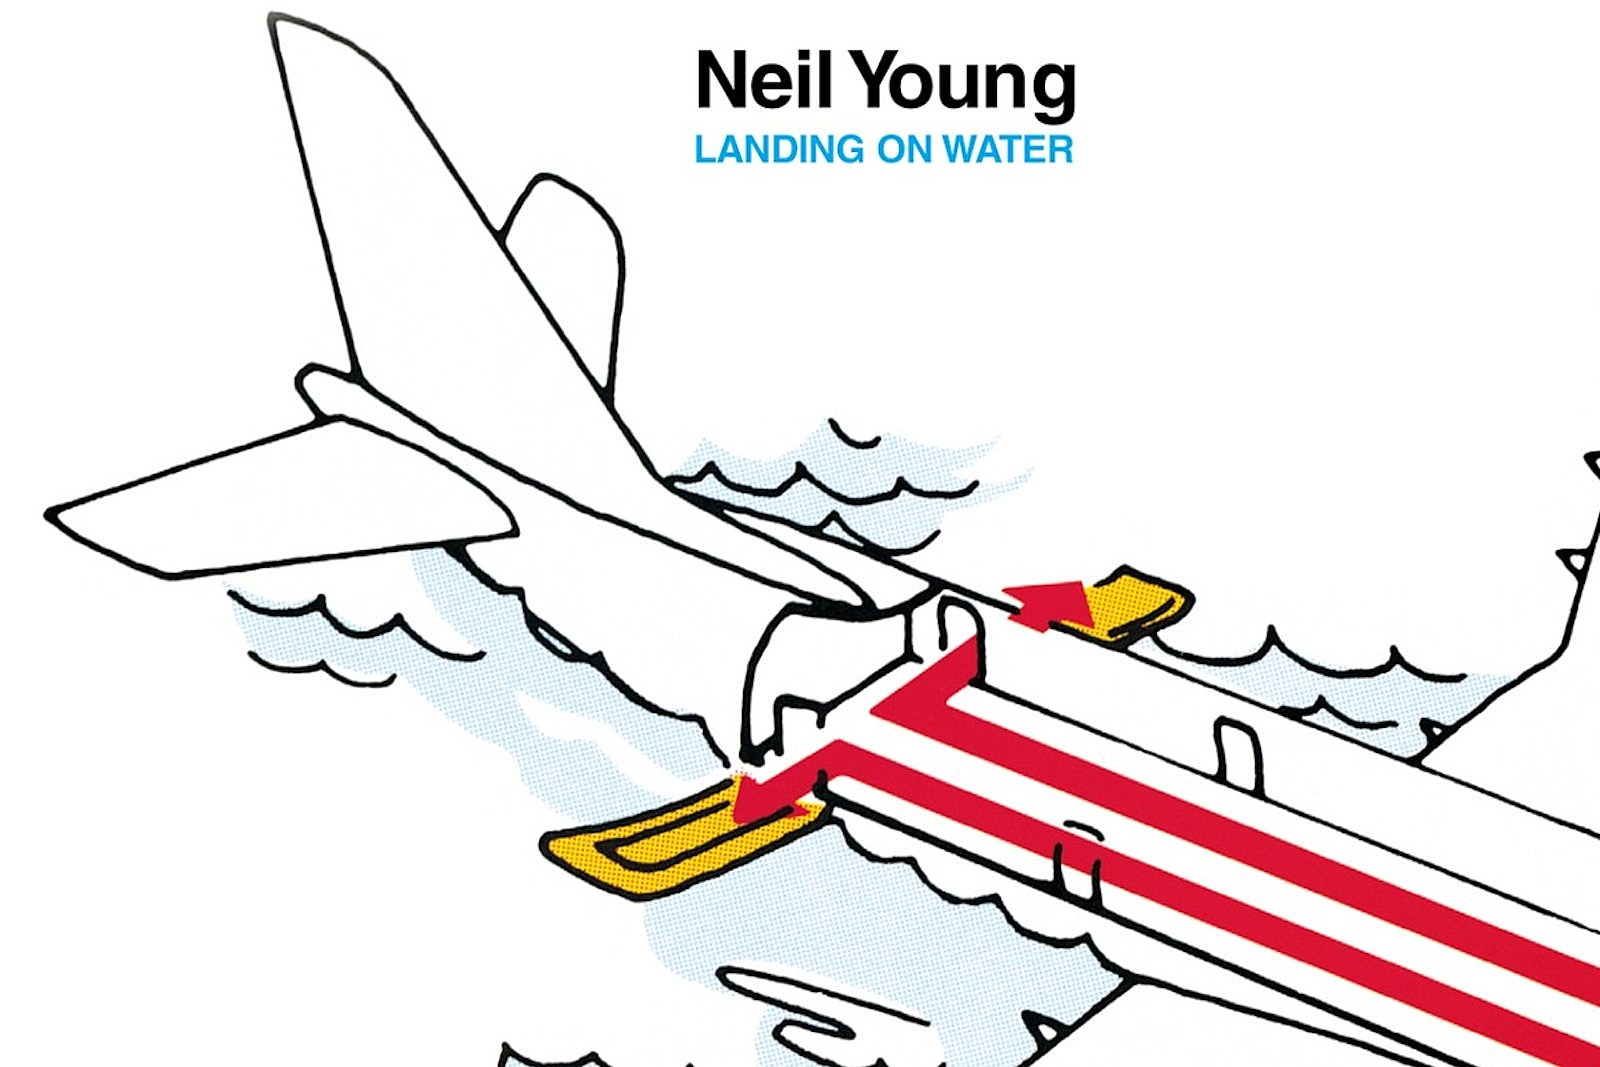 35 Years Ago: Neil Young Plugs In Synths for 'Landing on Water'